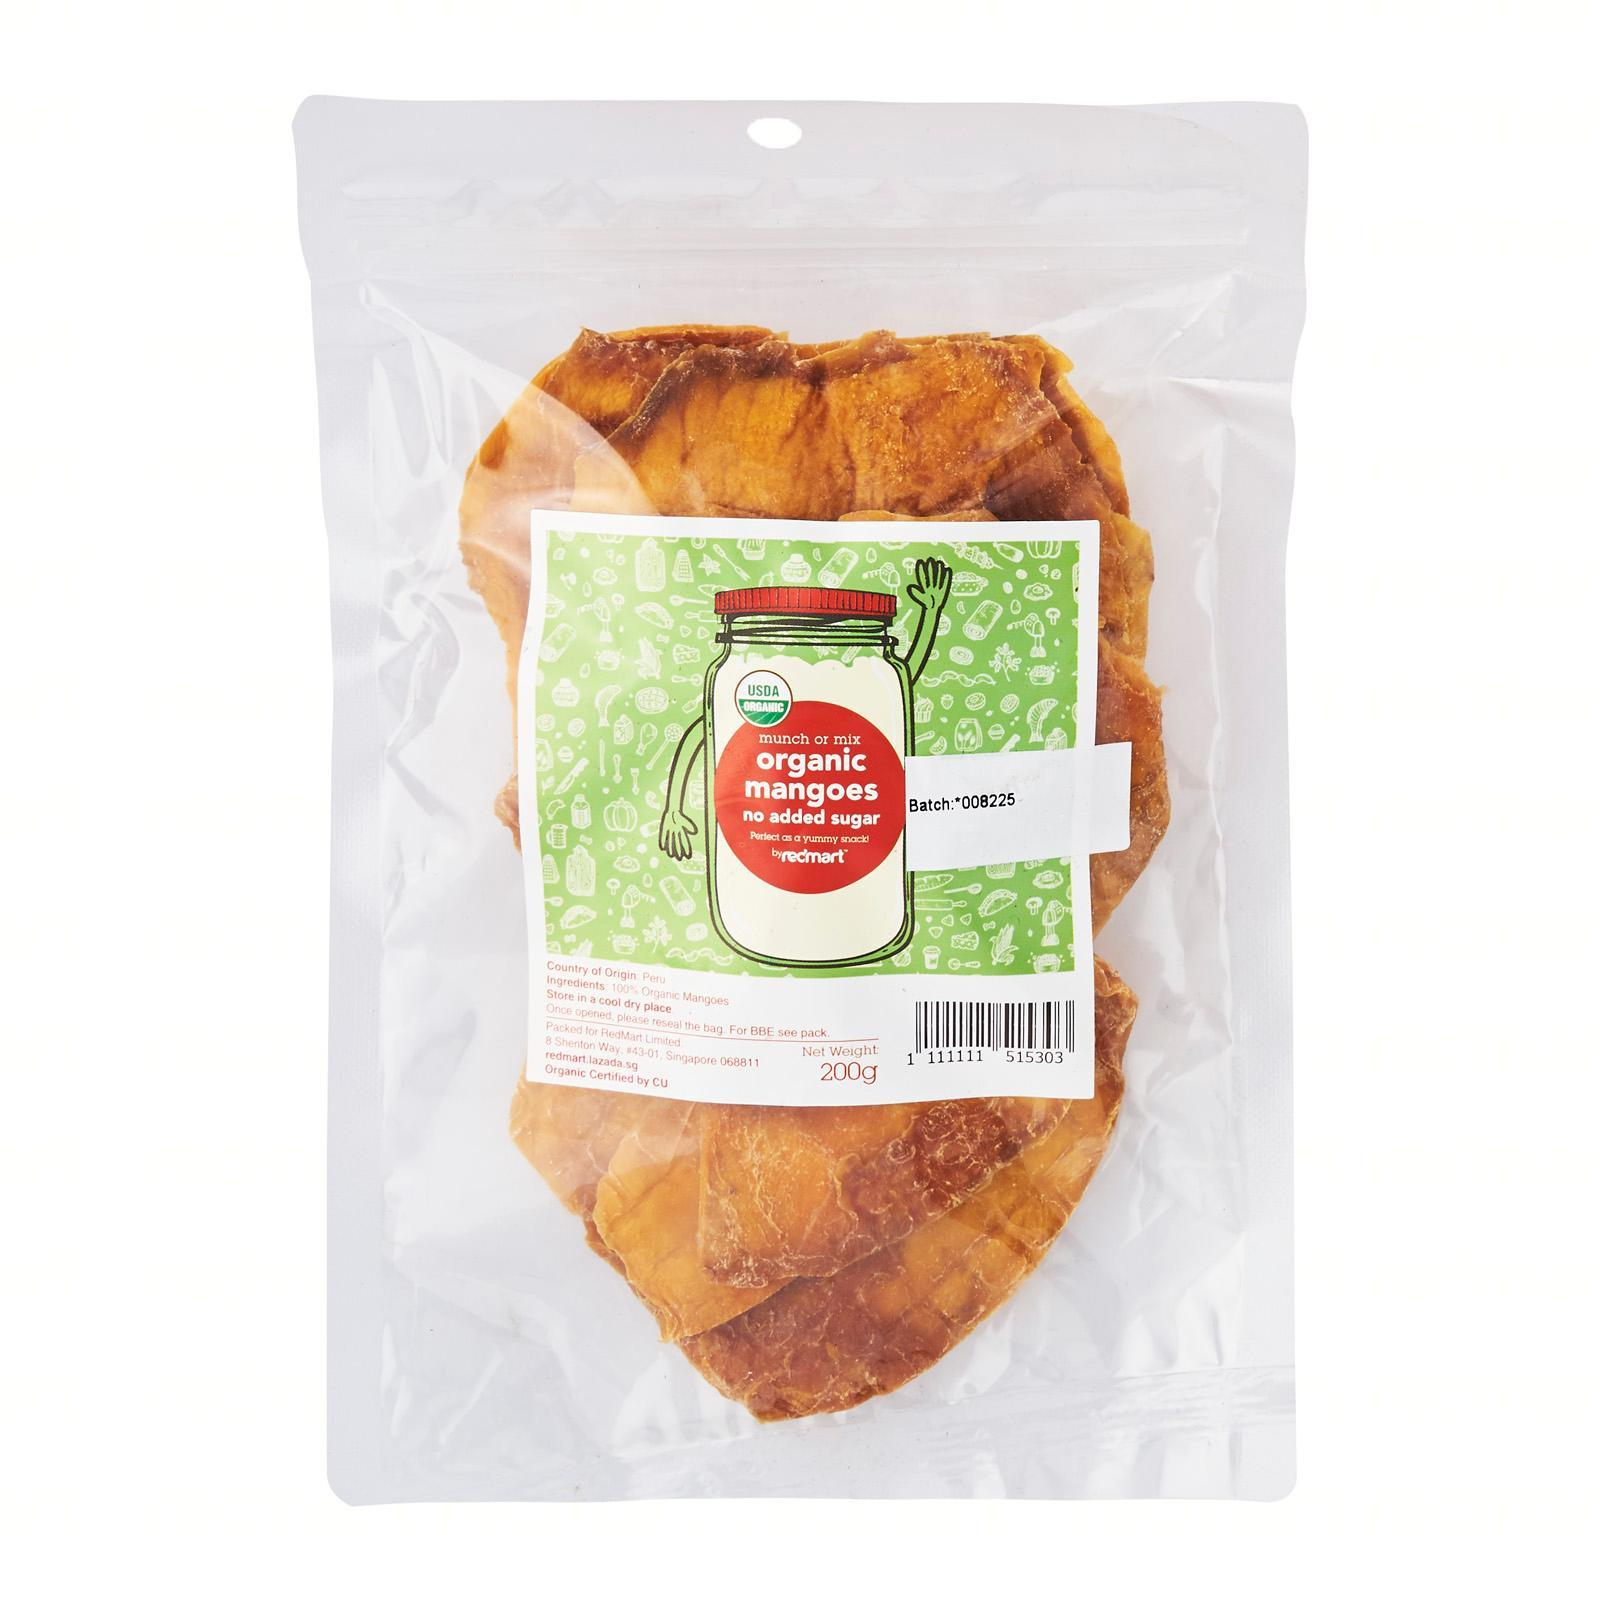 RedMart Organic Mango - No Added Sugar Dried Fruit